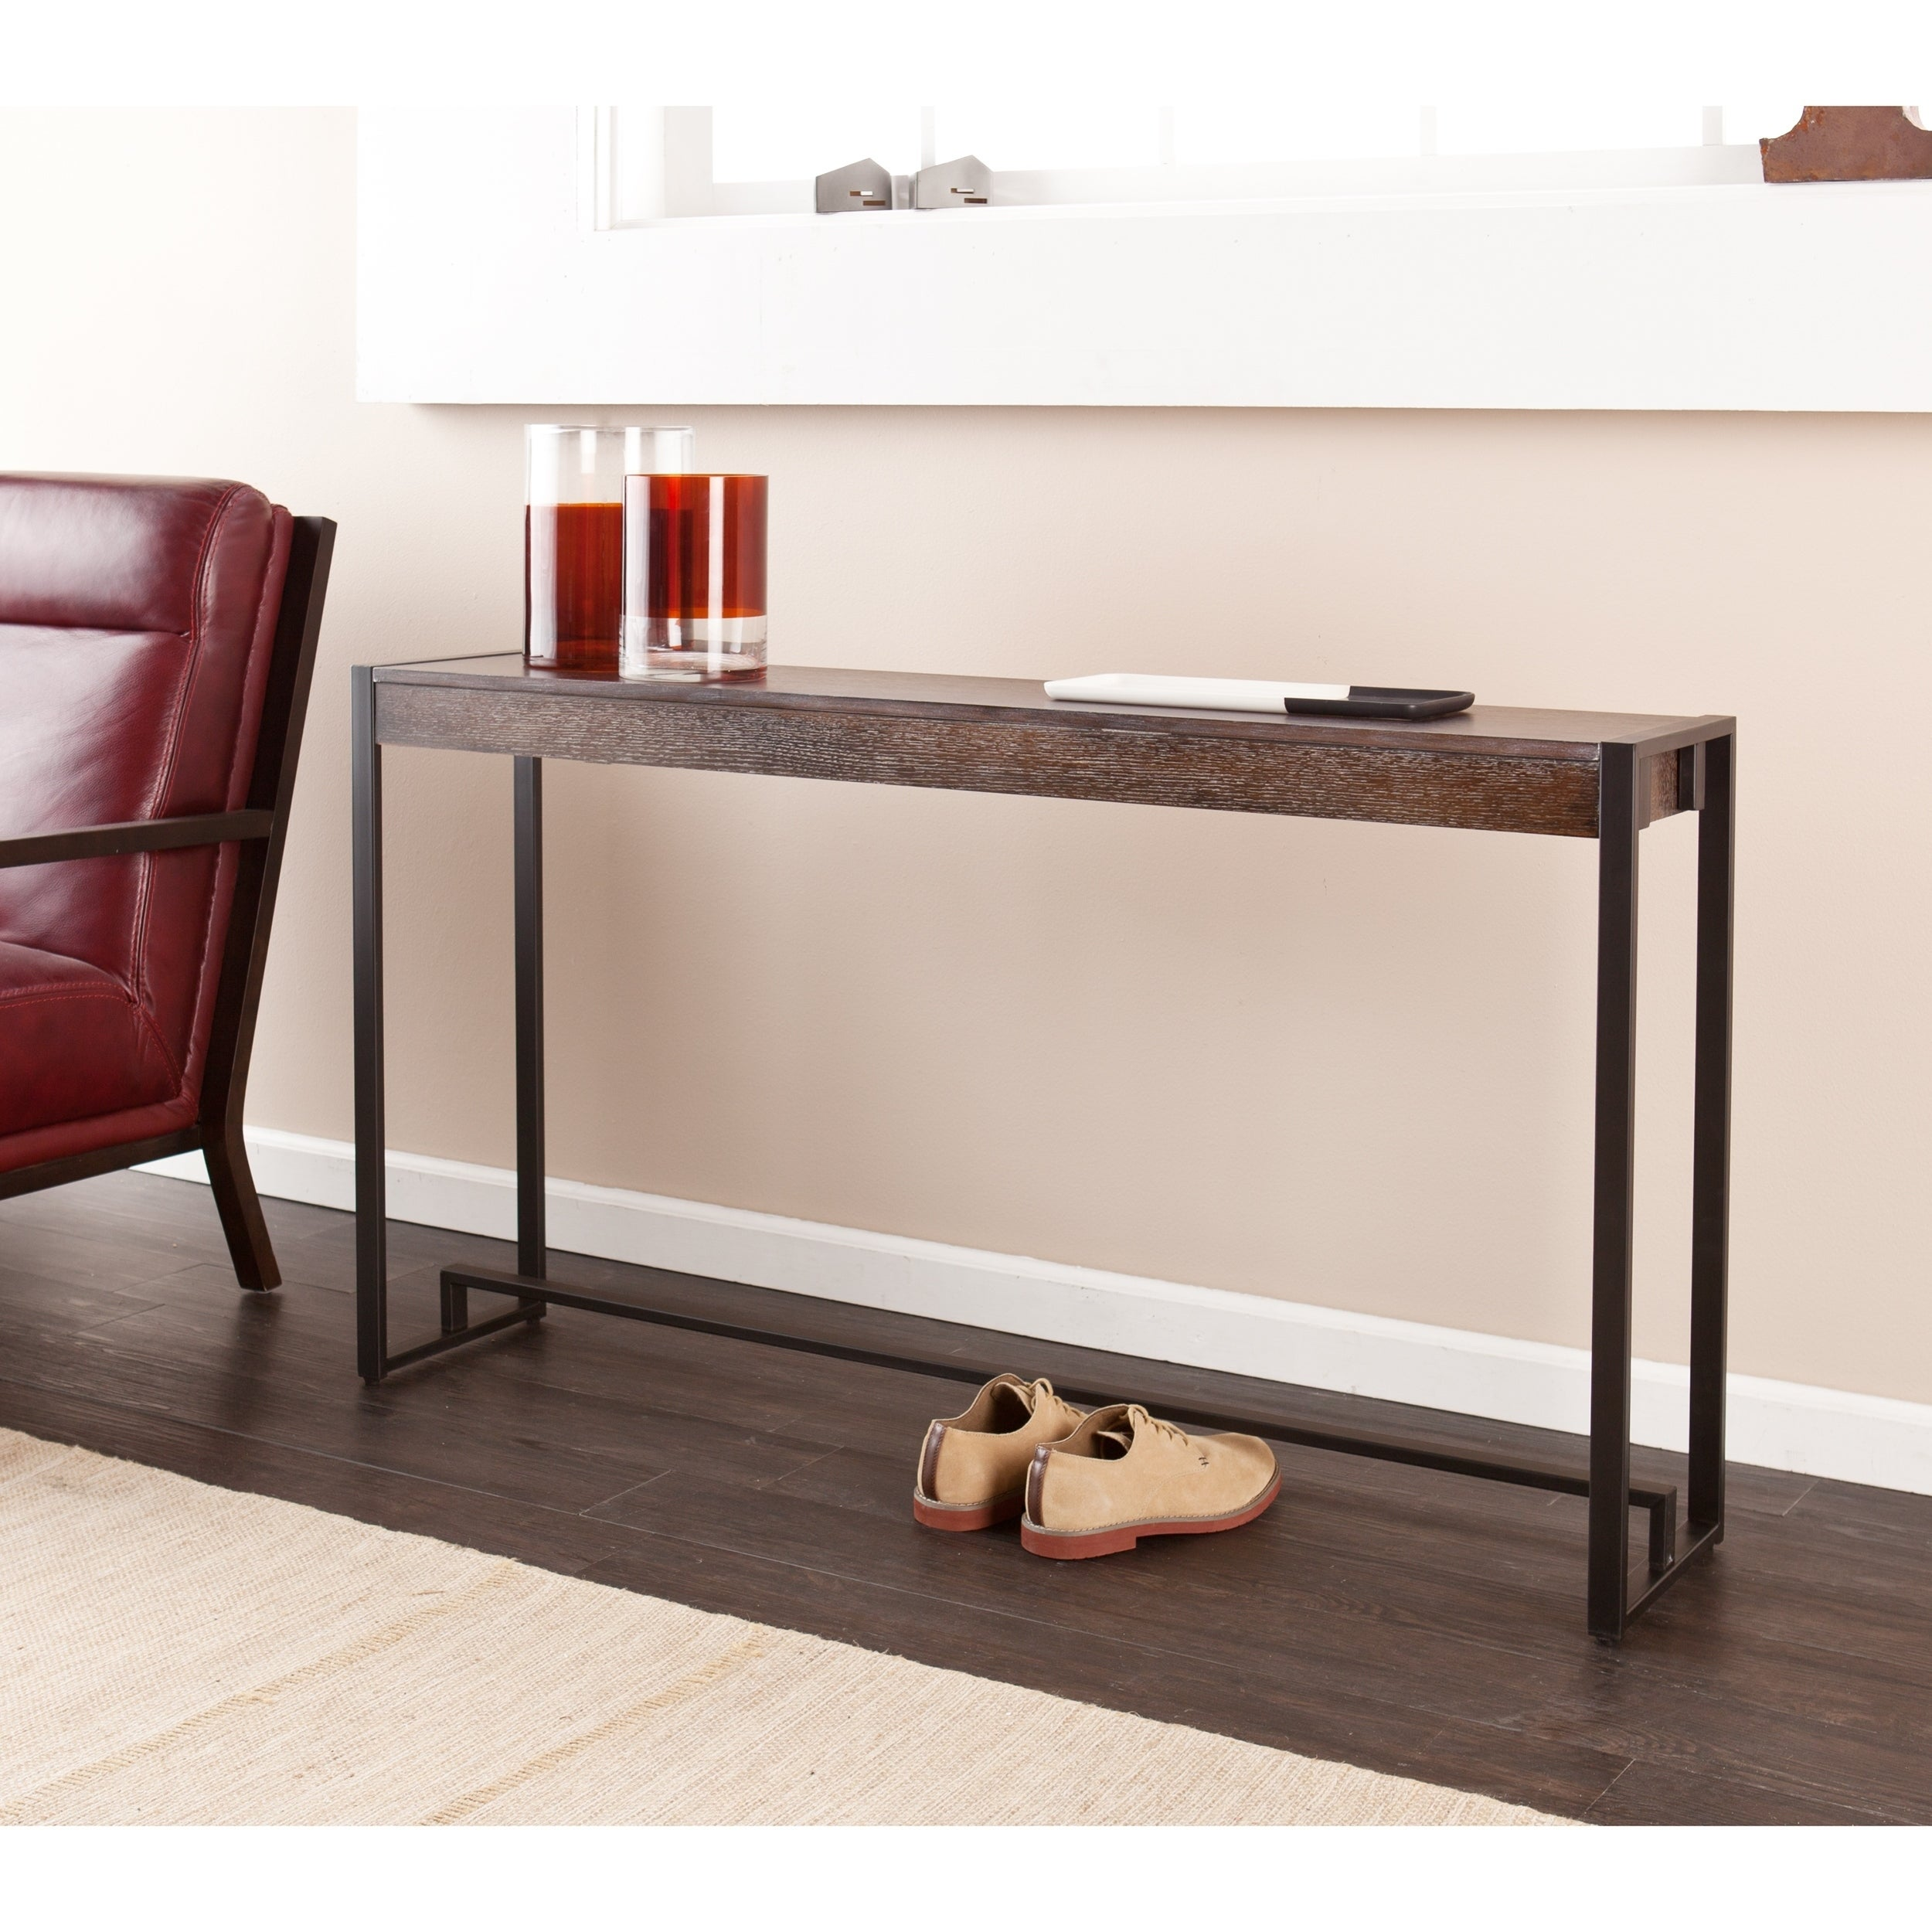 Pleasant Buy Console Tables Online At Overstock Our Best Living Lamtechconsult Wood Chair Design Ideas Lamtechconsultcom